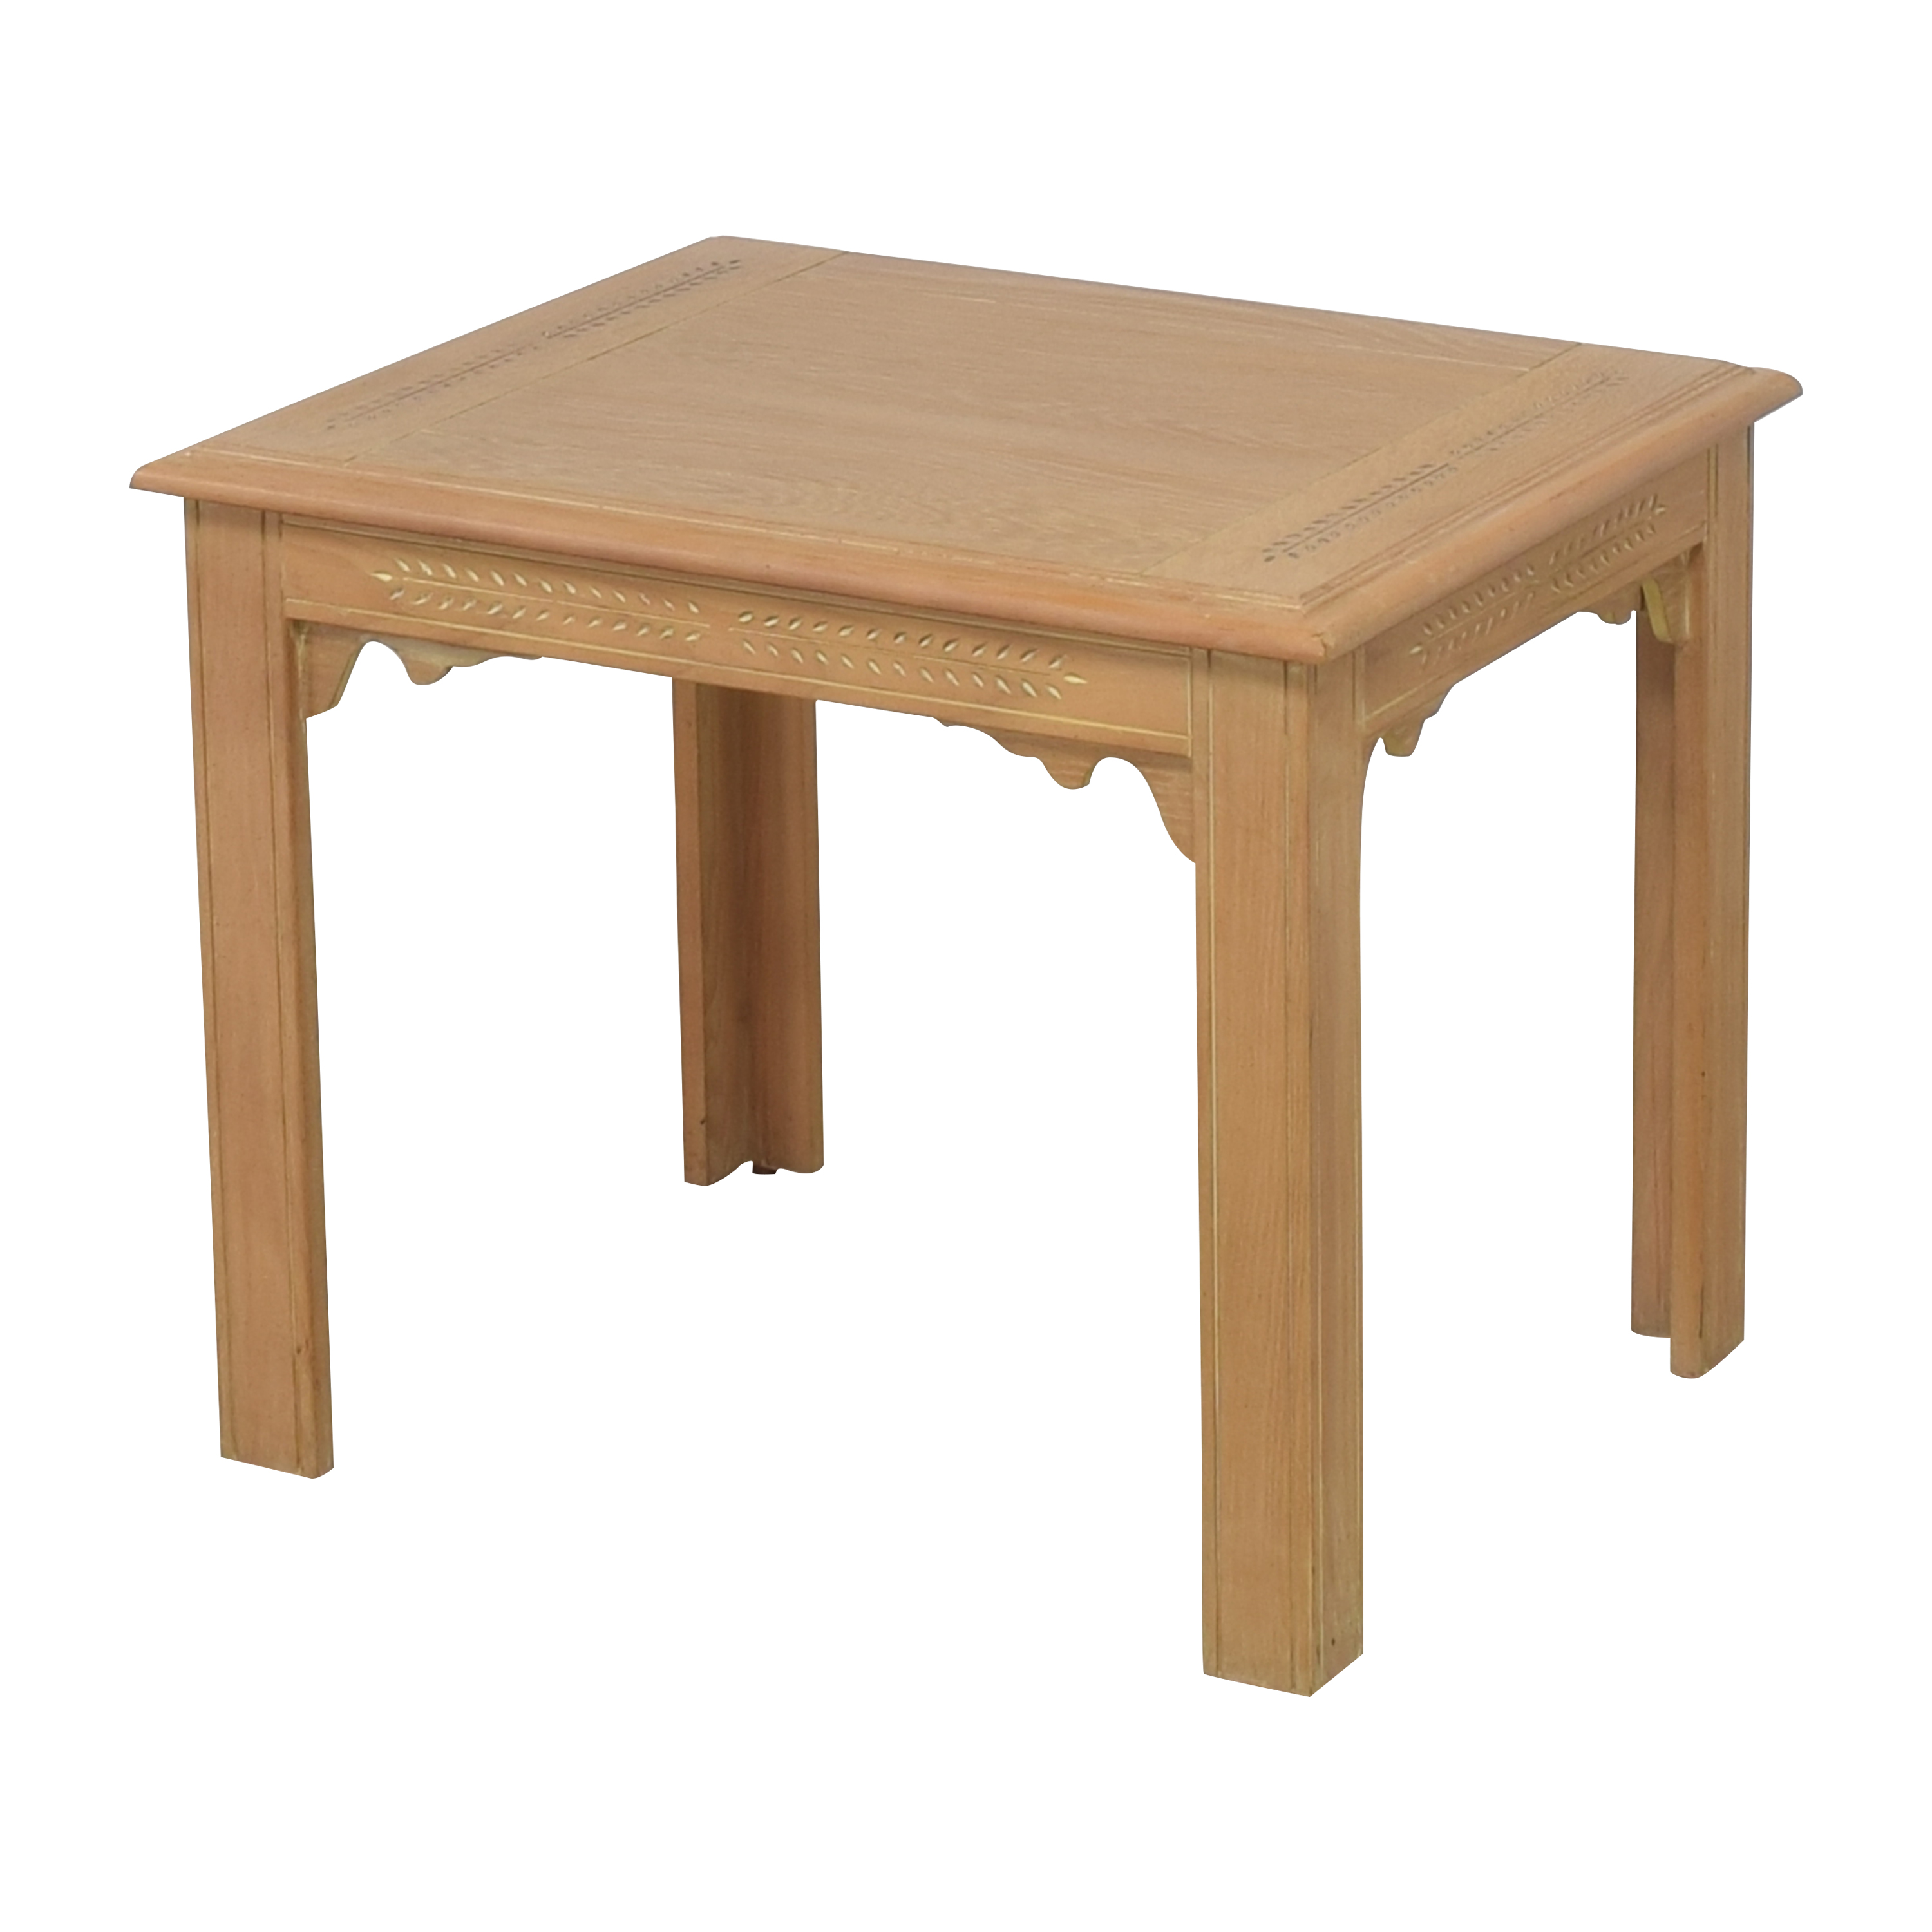 The Lane Company The Lane Company Virginia Maid Side Table for sale